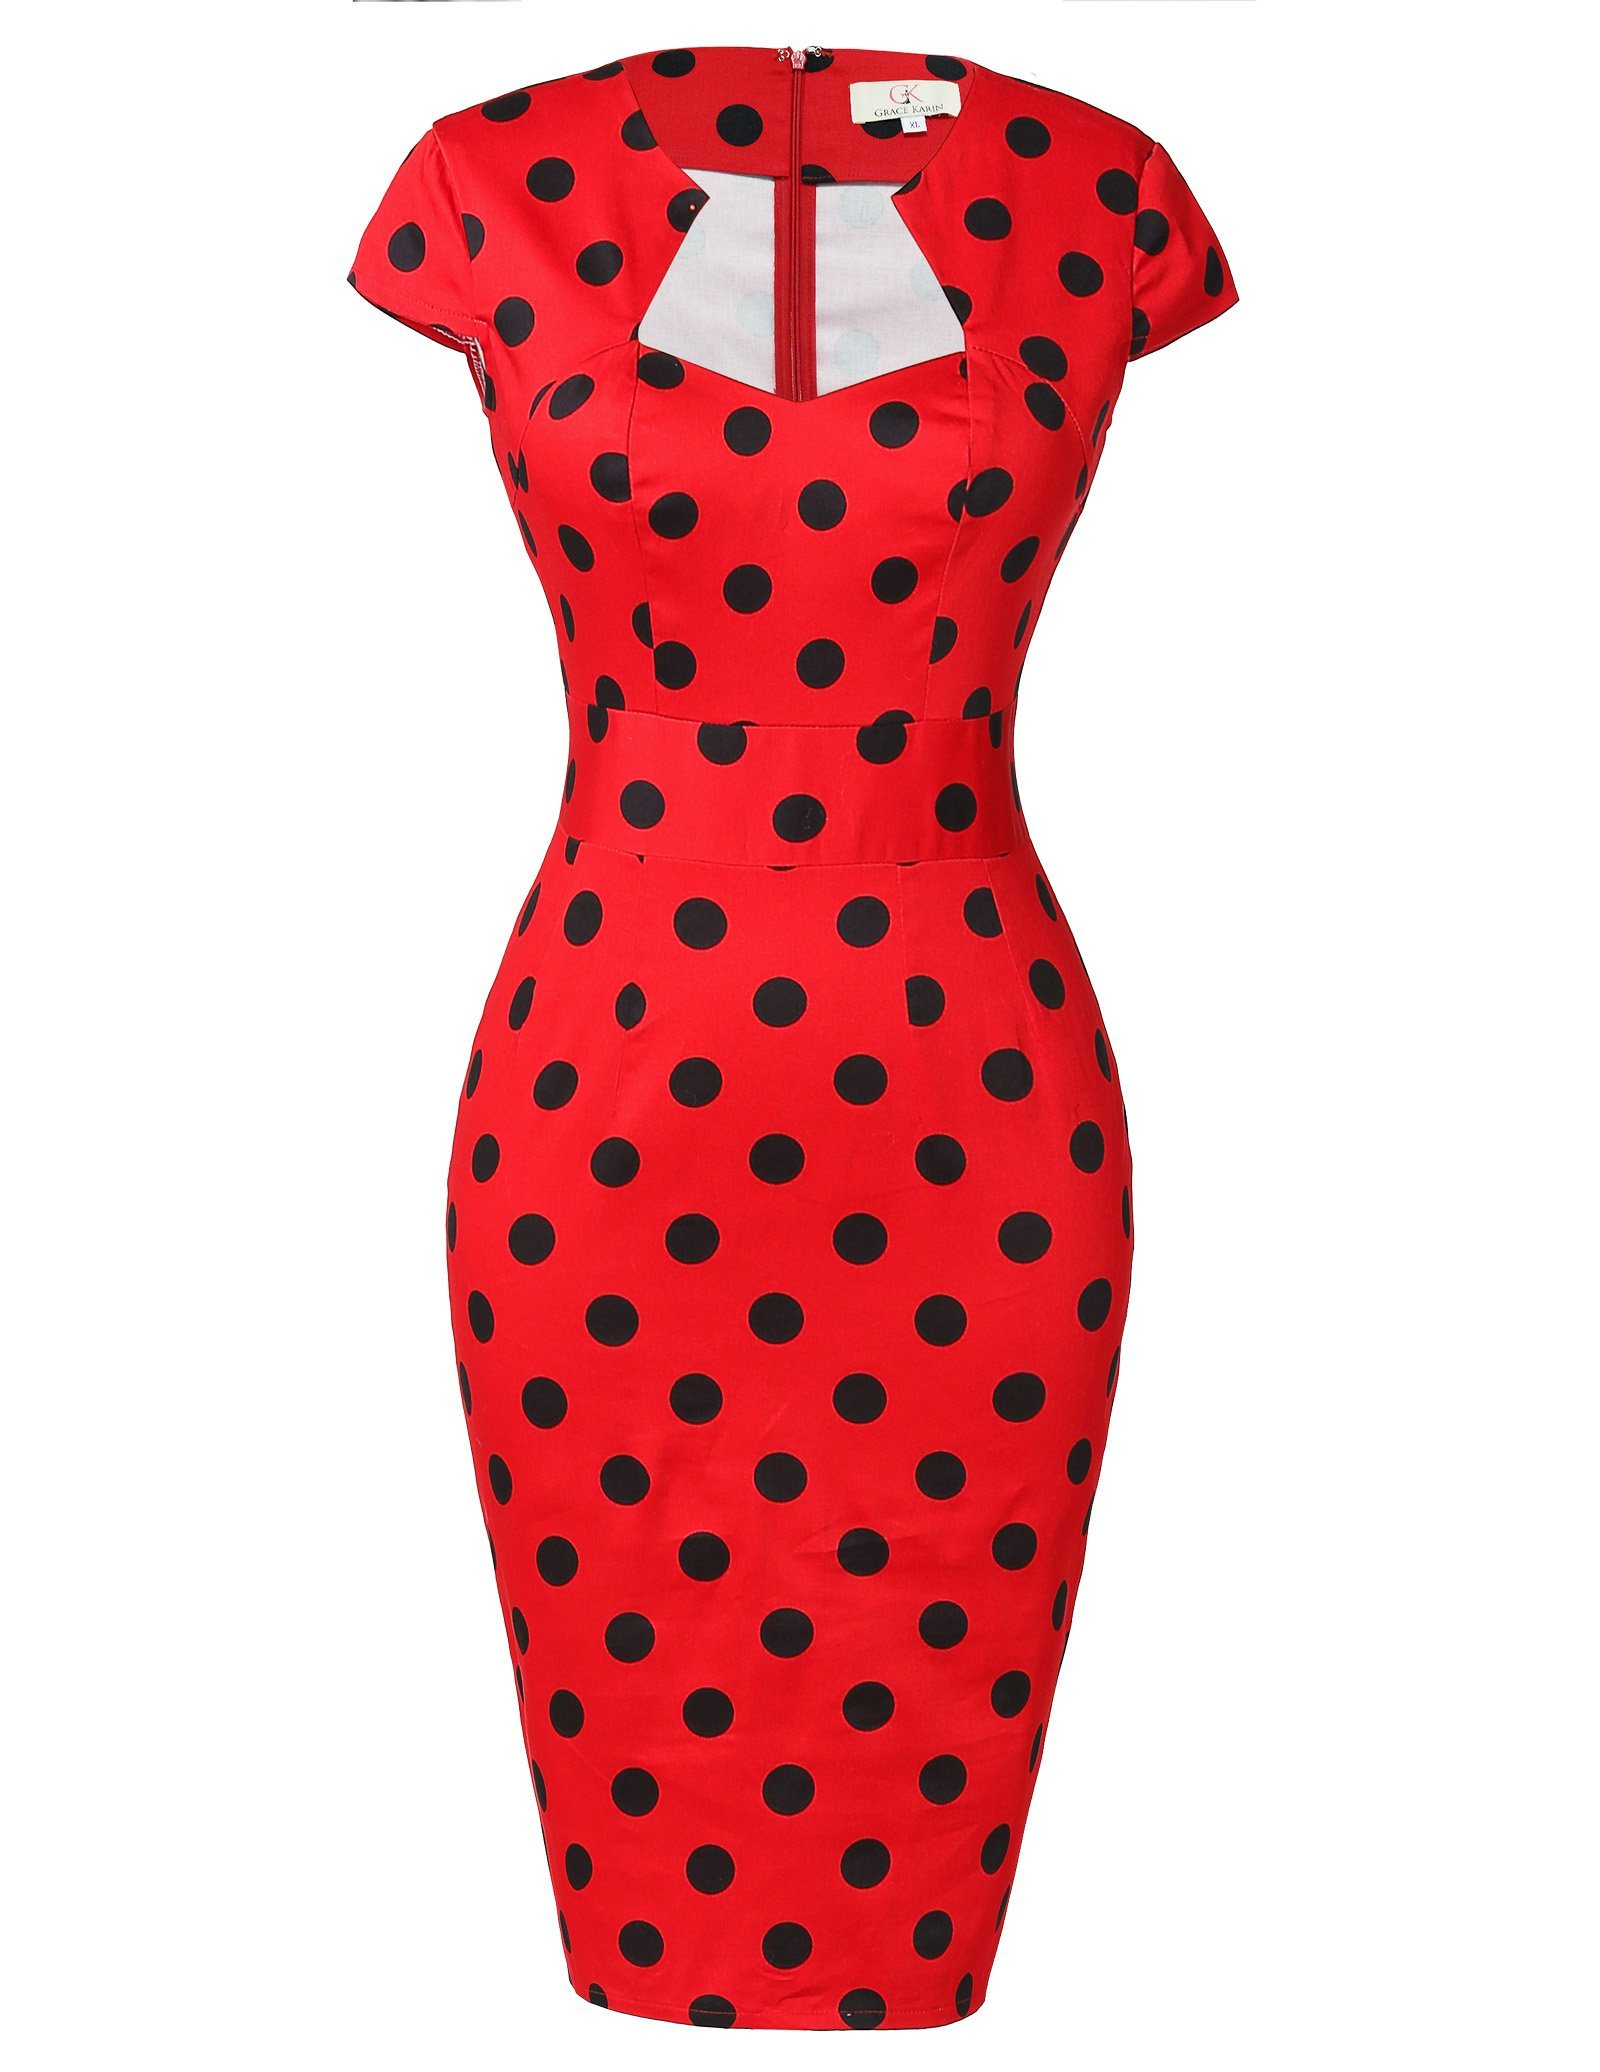 Womens Cap Sleeve Polka Dot Vintage Dress for Wedding Party Red M CL7597-2